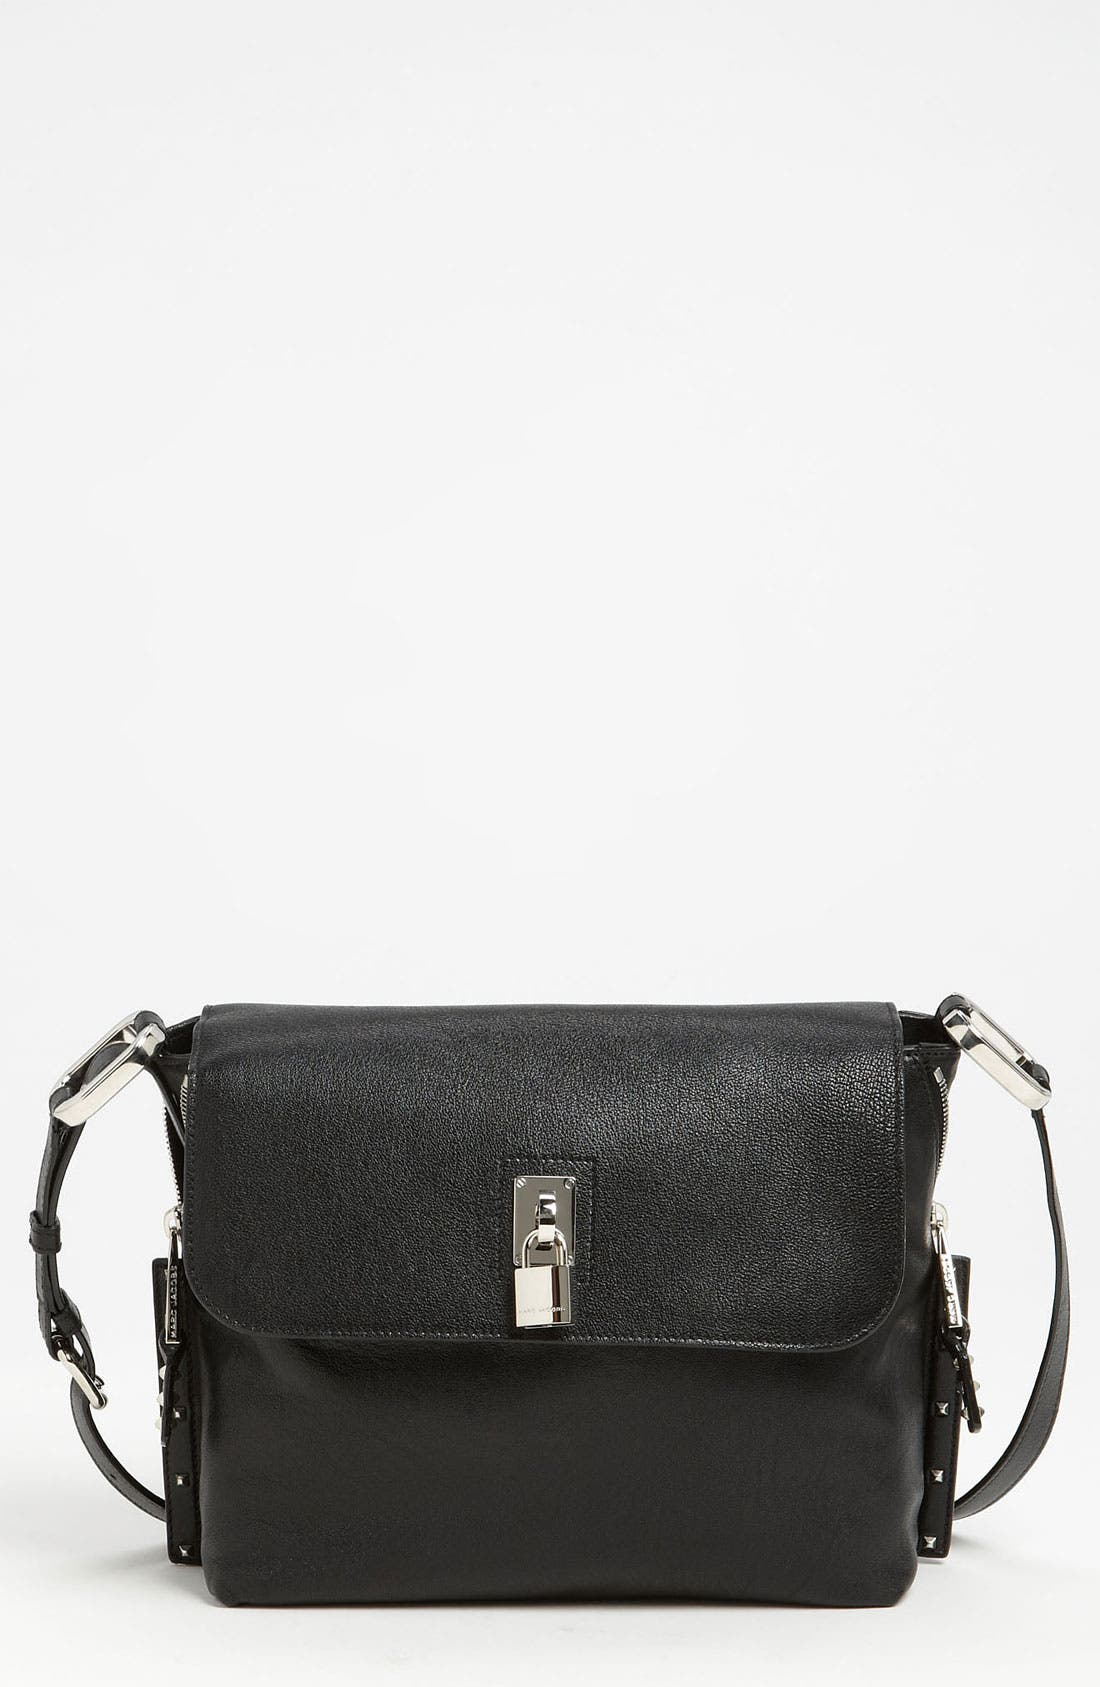 Main Image - MARC JACOBS 'Paradise Baxter' Lambskin Leather Crossbody Bag